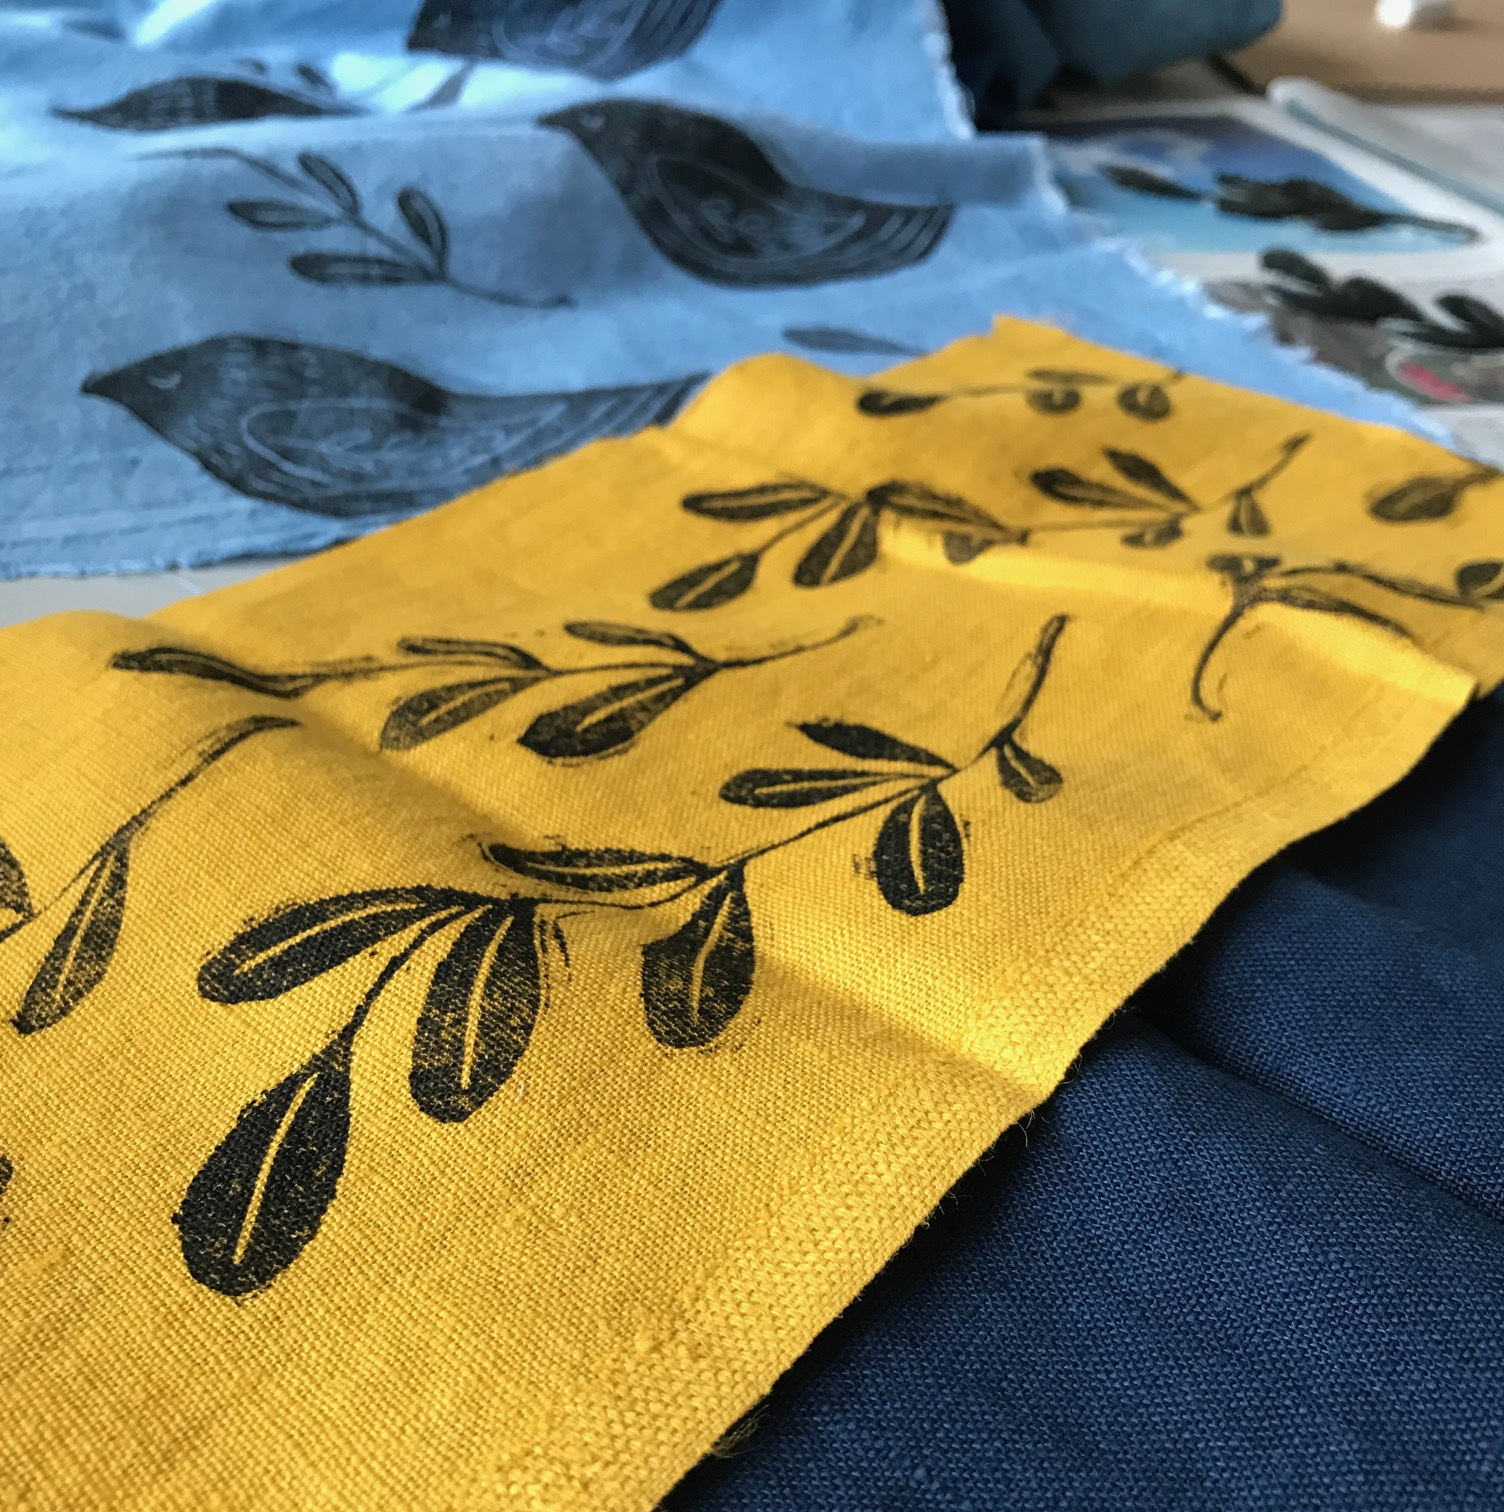 block print on fabric